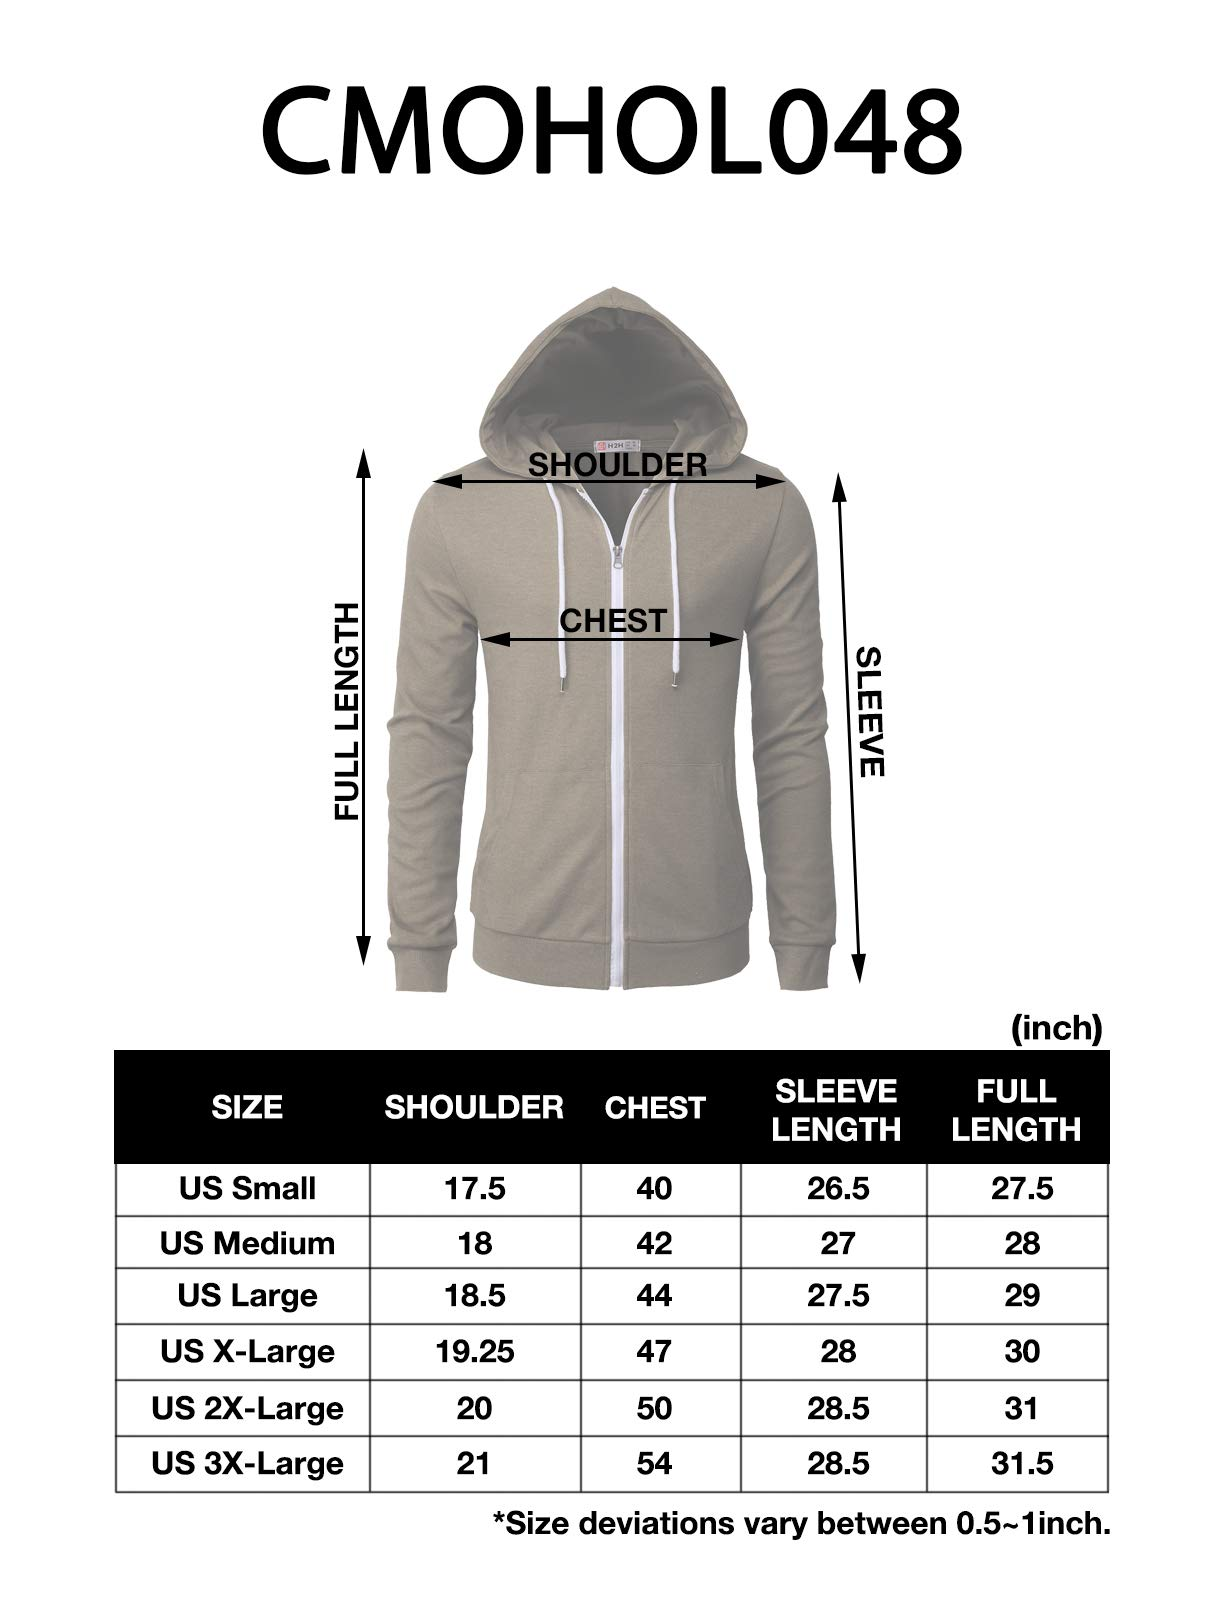 H2H Mens Casual Zip up Hoodie Basic Long Sleeve Zip up HEATHERBROWN US 2XL/Asia 3XL (CMOHOL048) by H2H (Image #7)